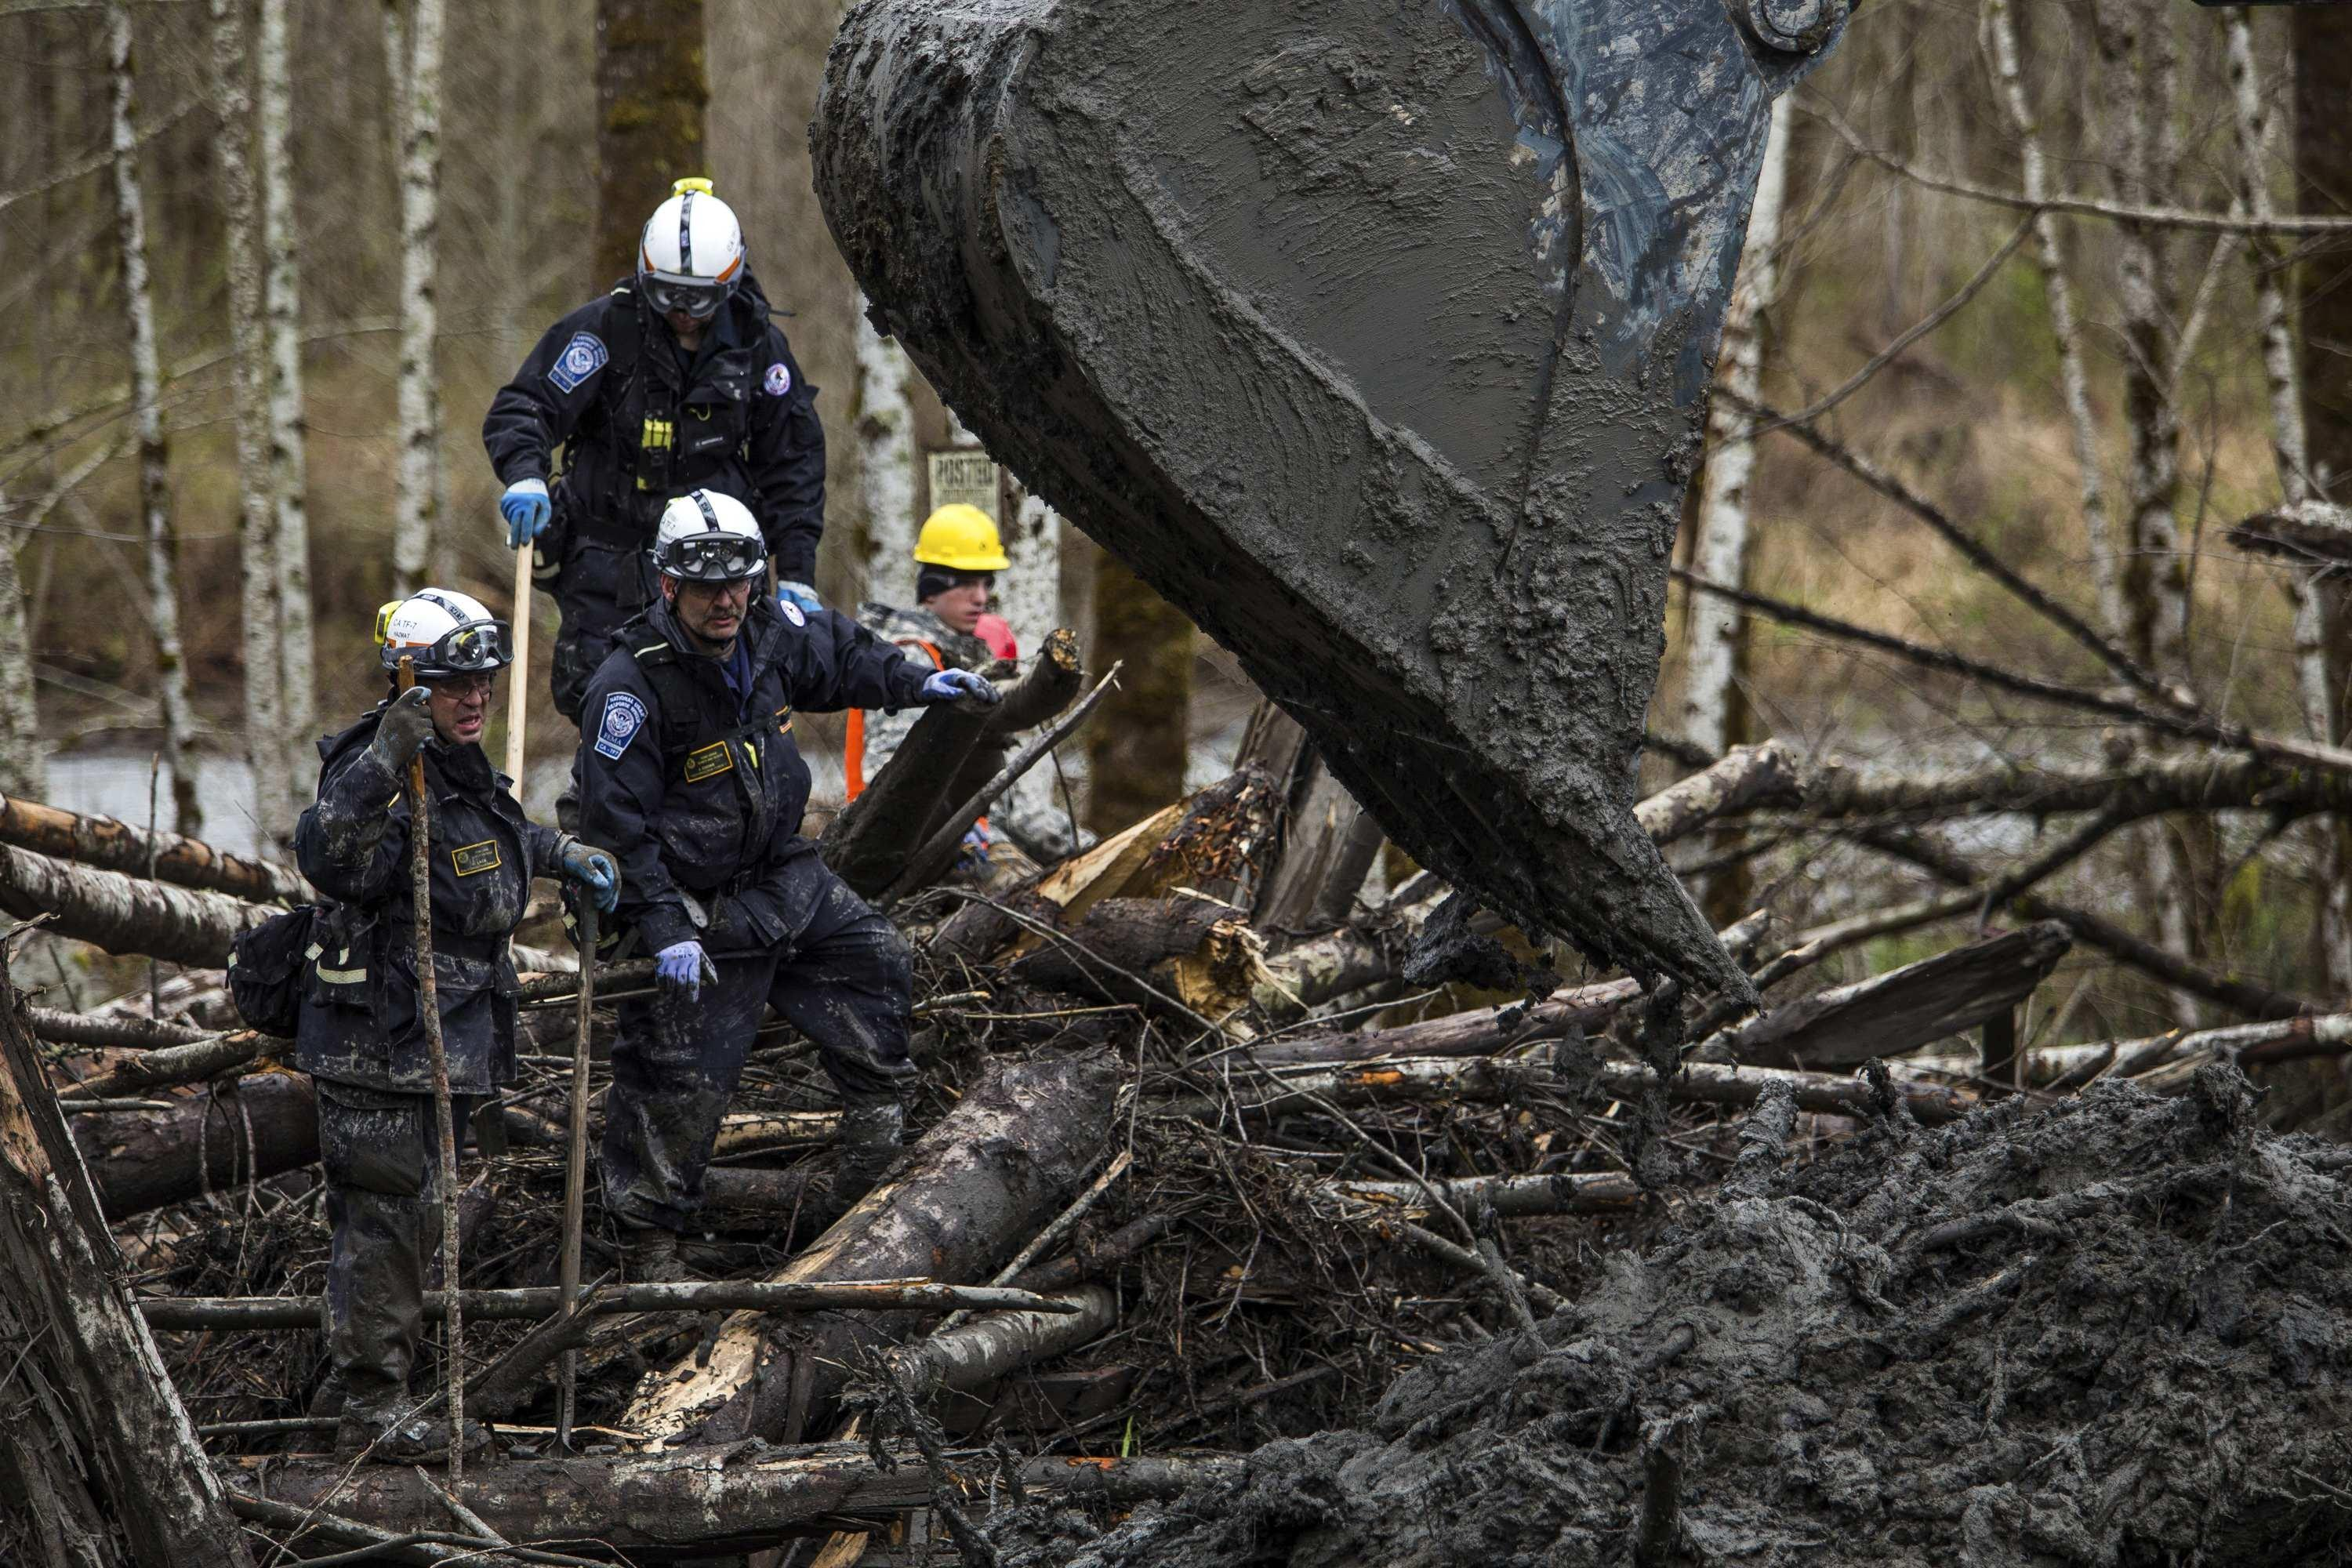 Image: Rescuers watch carefully as an excavator combs through the large debris pile left by a mudslide in Oso.